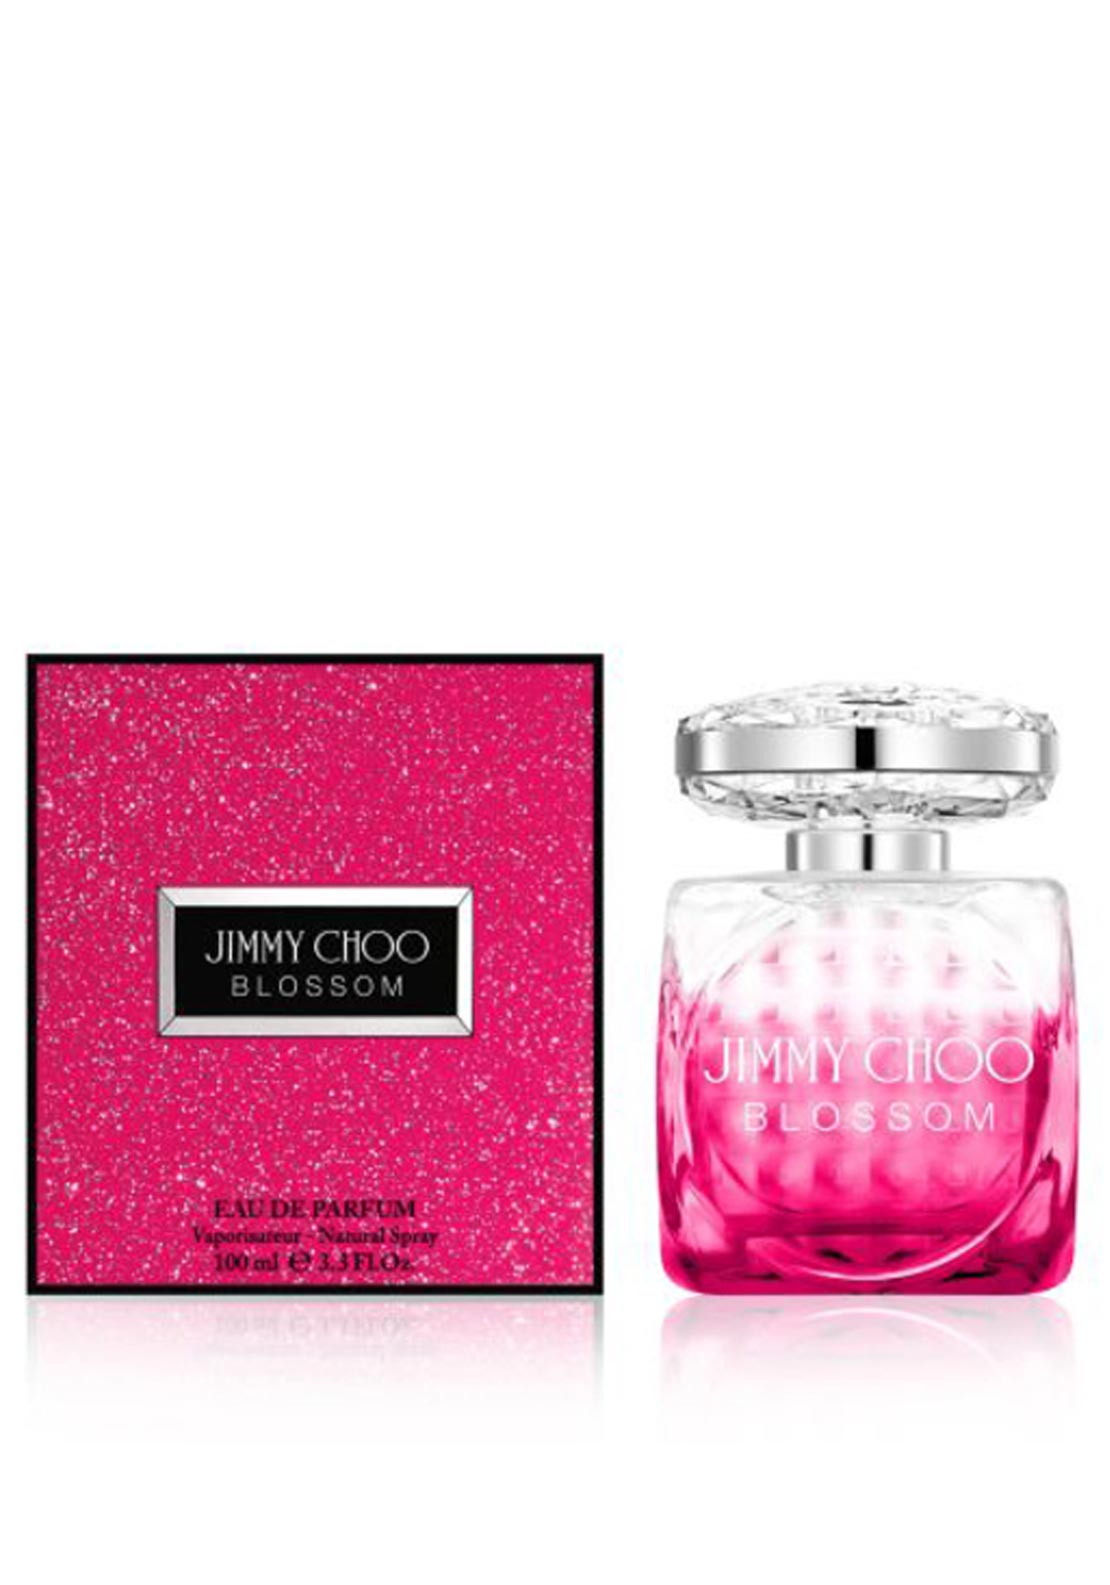 Jimmy Choo Blossom Eau De Parfum Natural Spray, 100ml